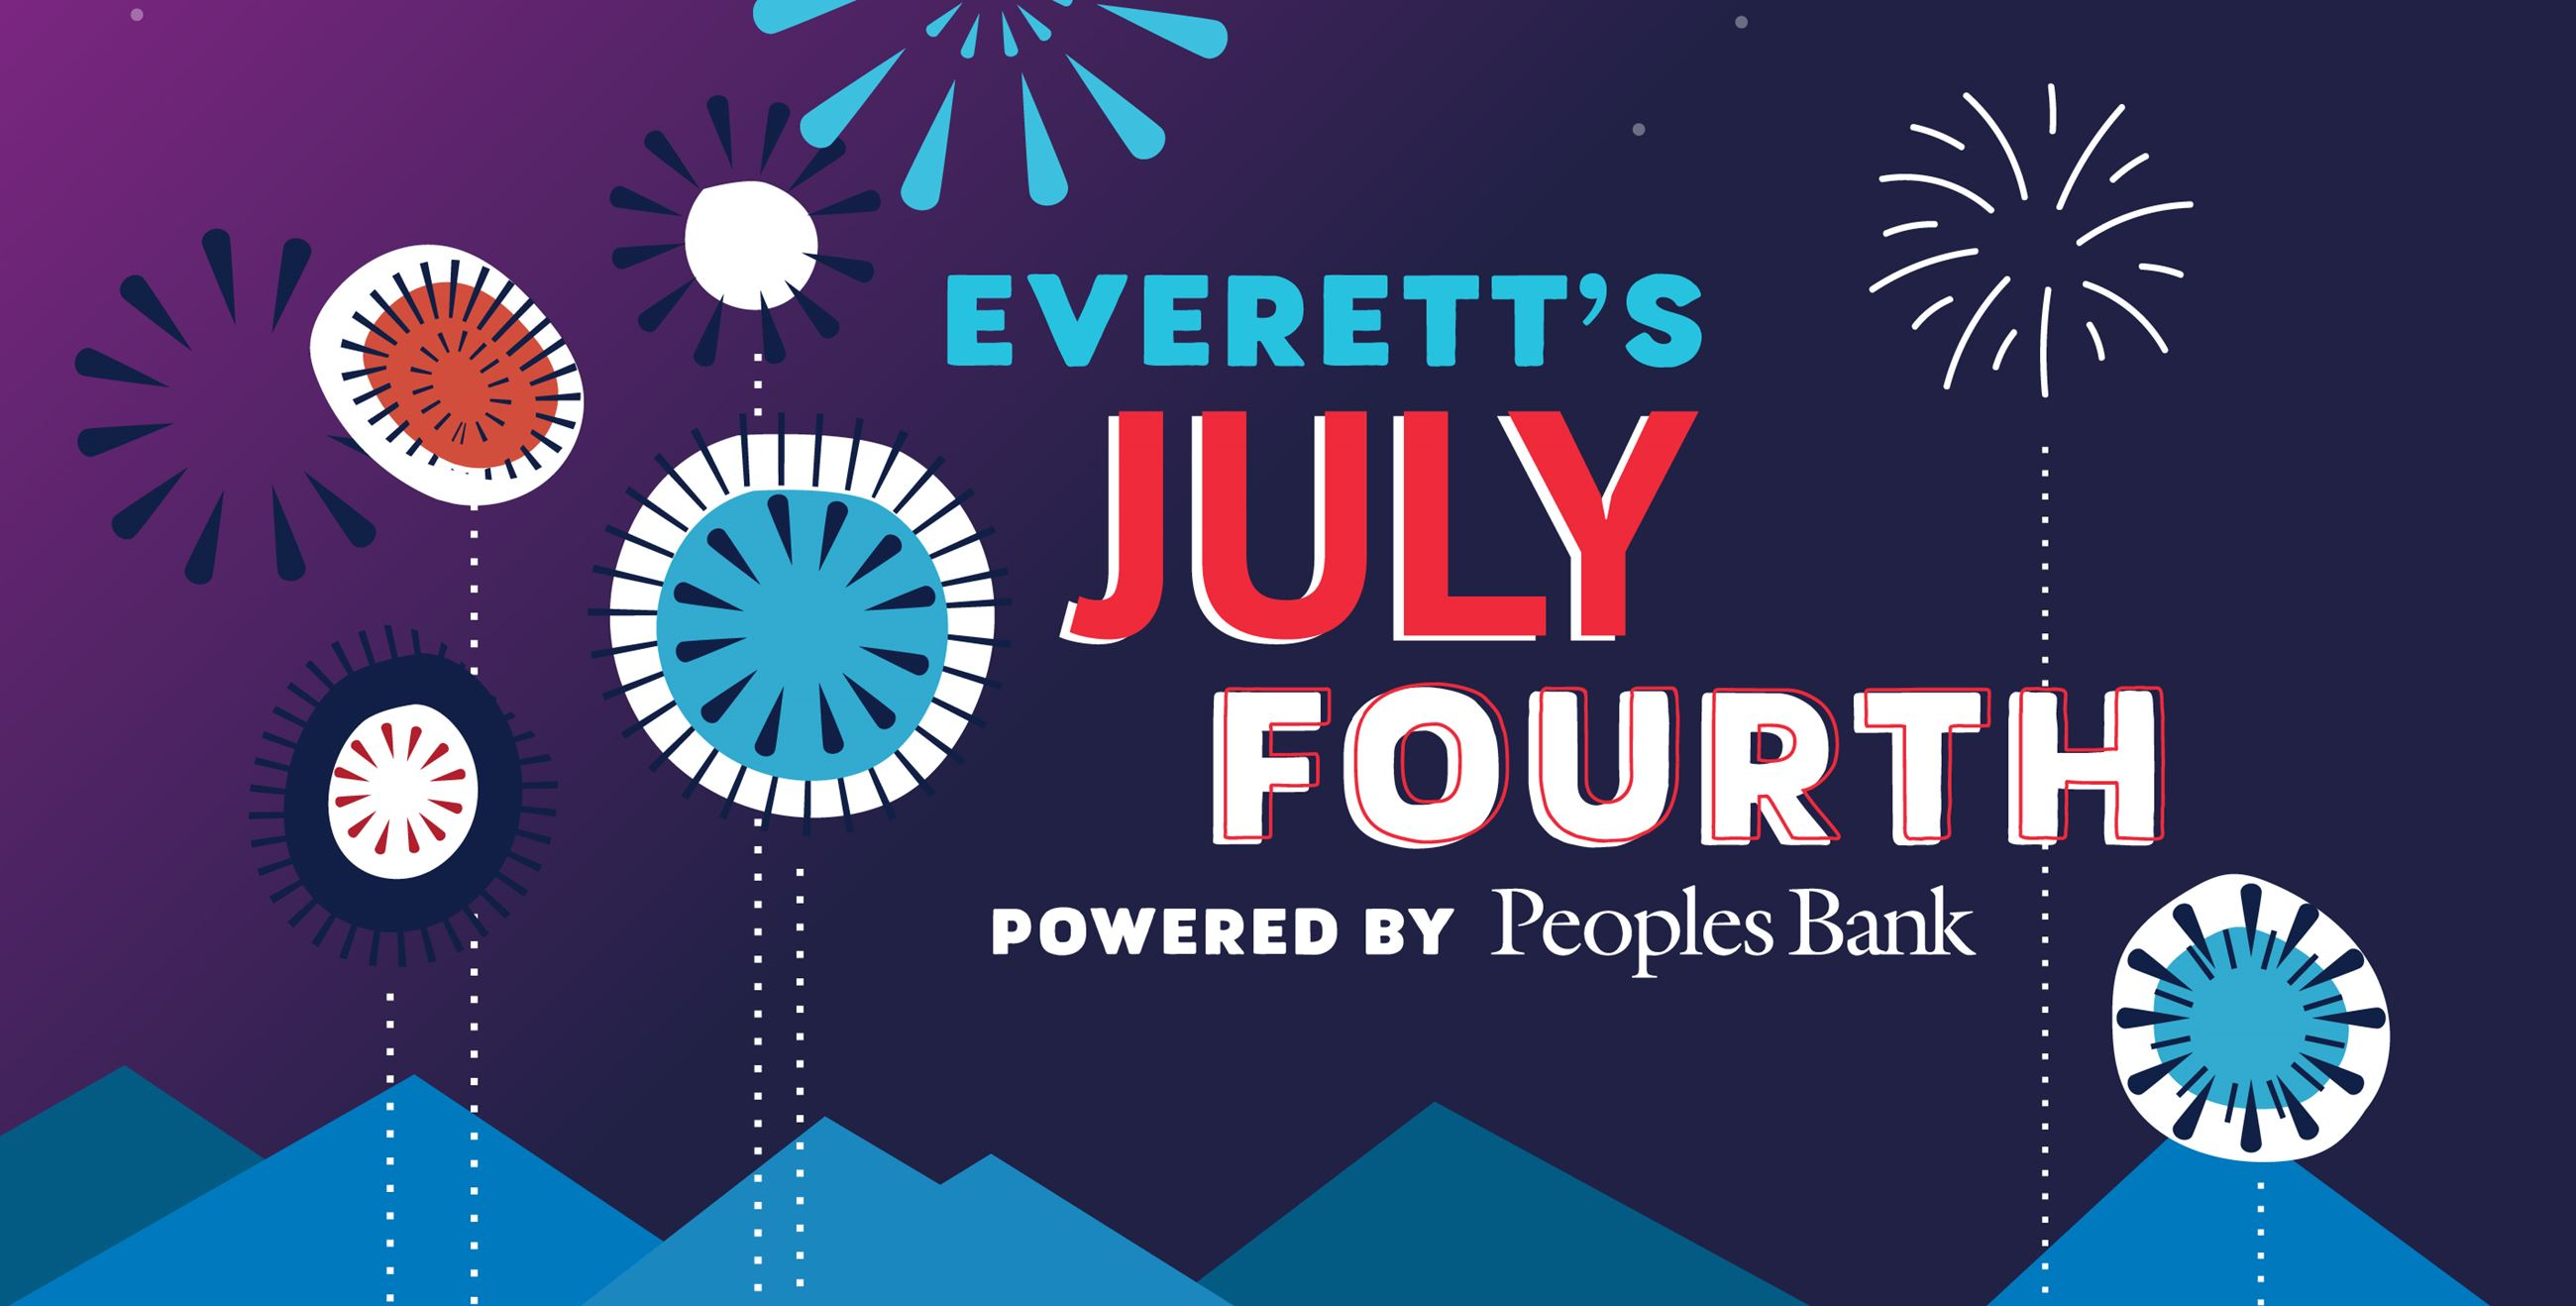 Web banner - Everett's July Fourth powered by Peoples Bank